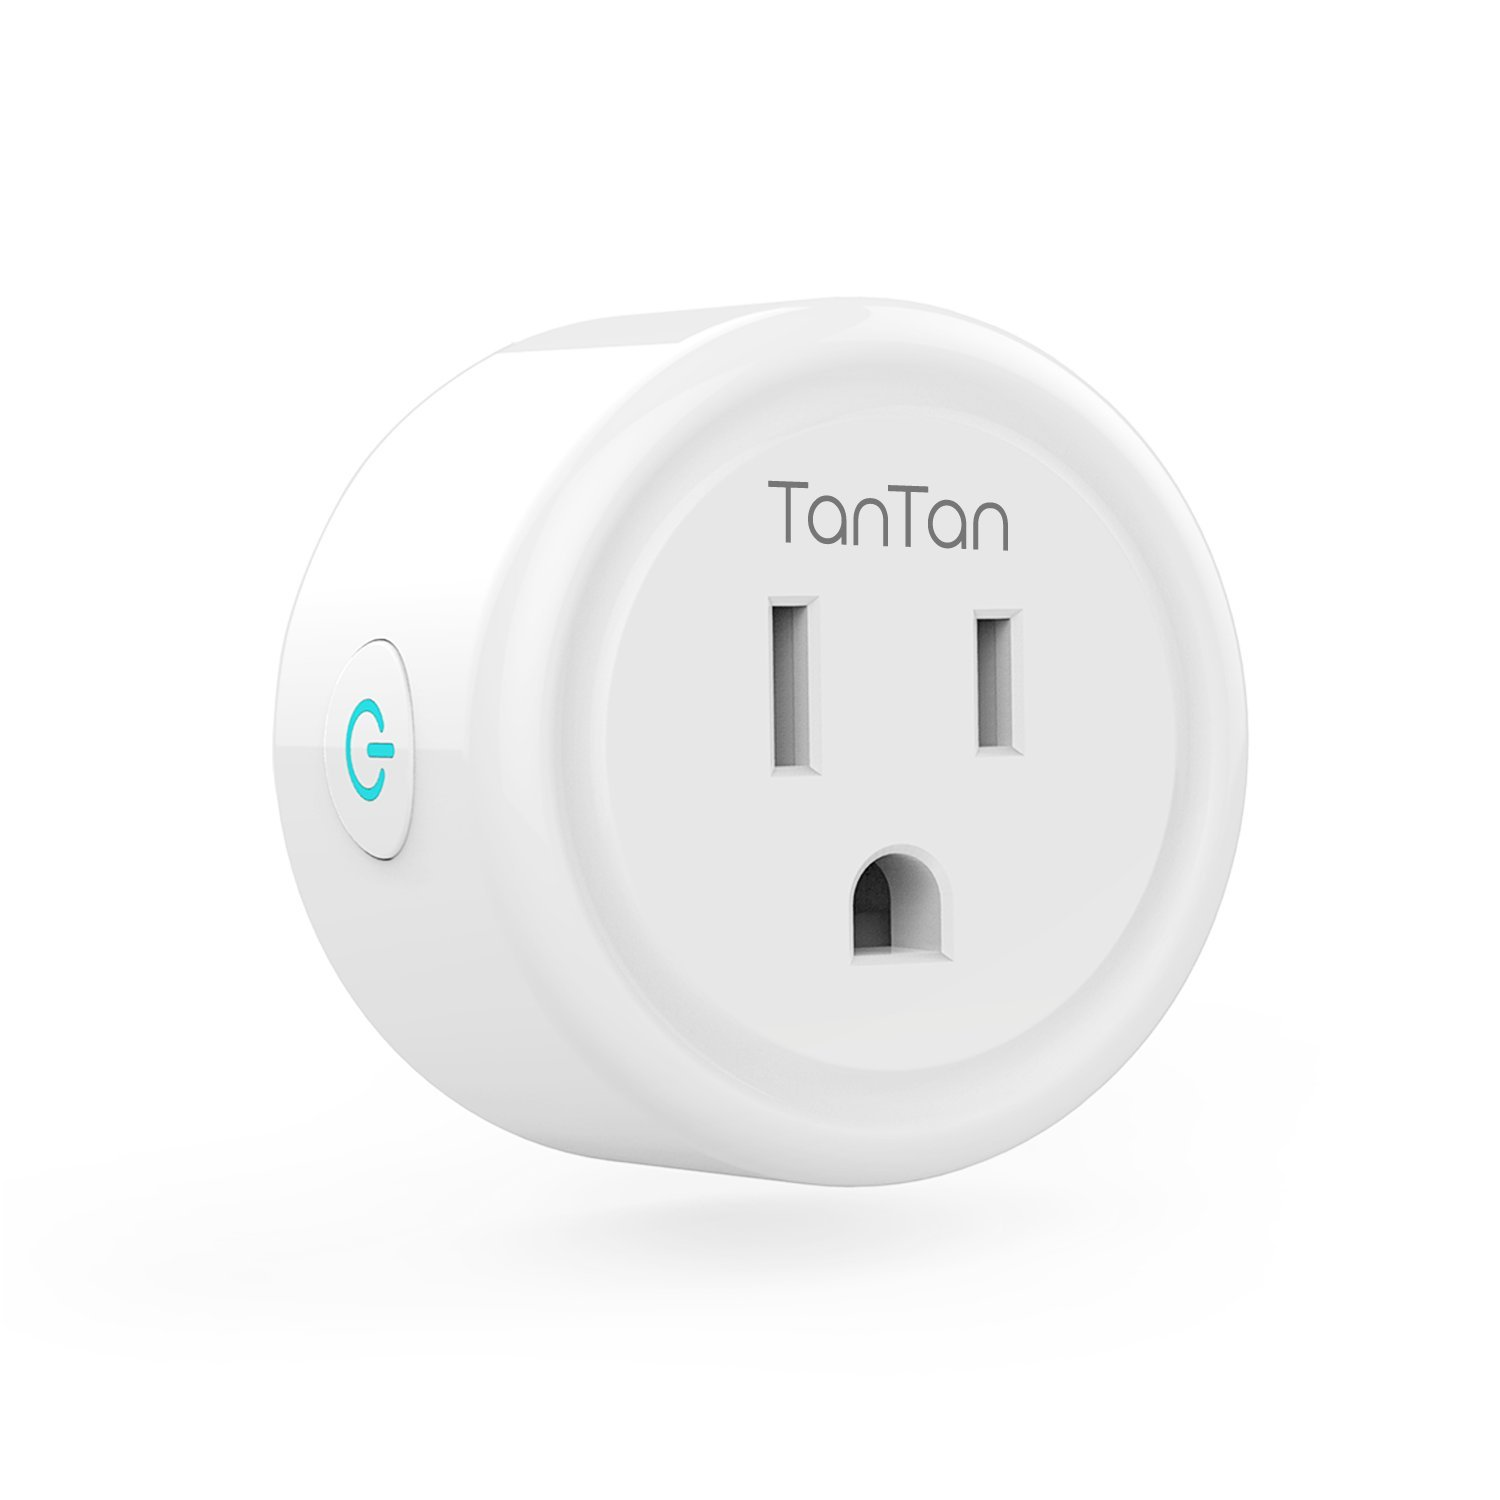 Smart Plug TanTan Wi-Fi Wireless Mini Socket Outlet Works with Amazon Alexa and Google Home & IFTTT, No Hub Required, Remote Control Your Devices from Anywhere, ETL Listed [Upgraded Version]